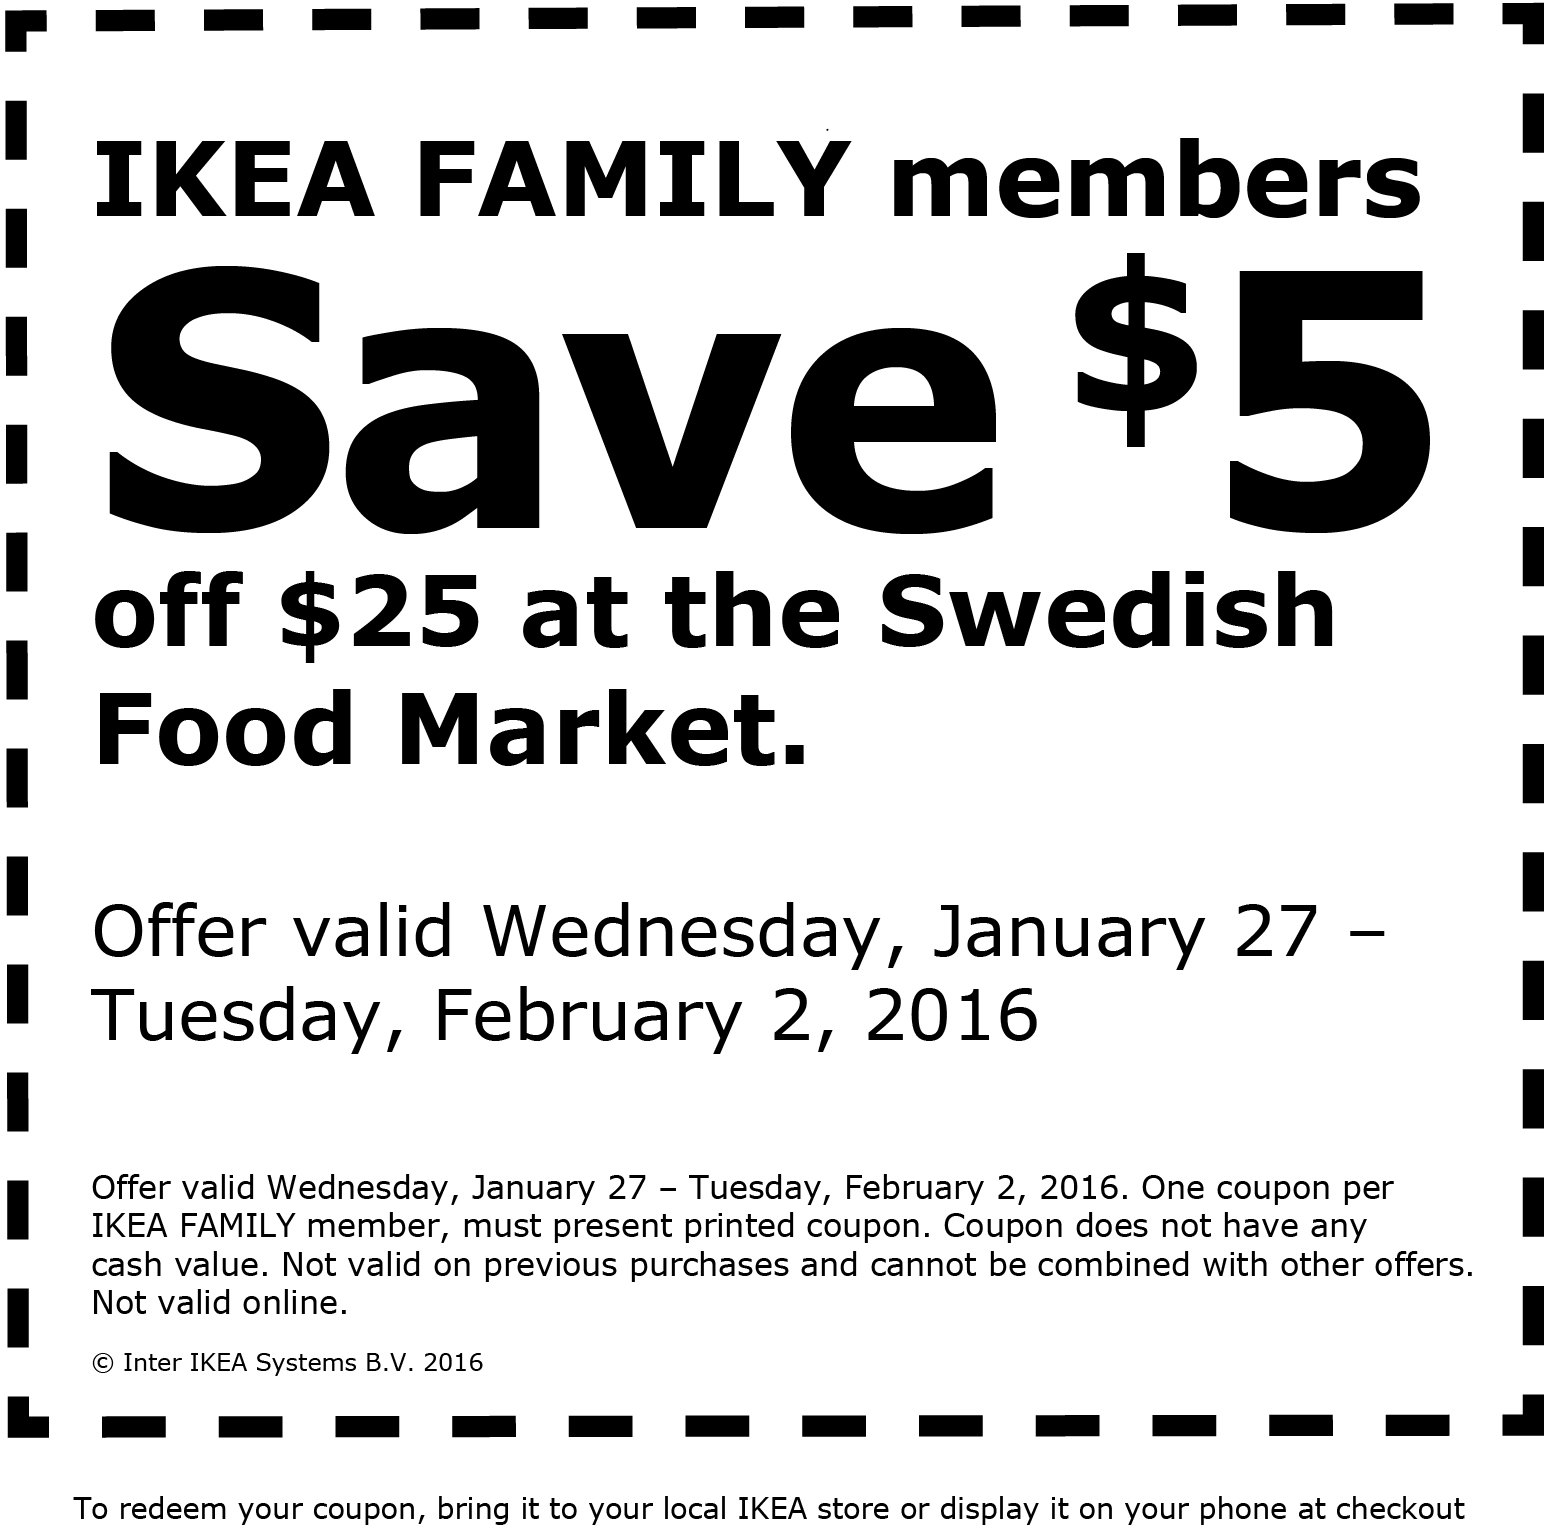 IKEA Coupon April 2019 $5 off $25 at the Swedish food market inside IKEA